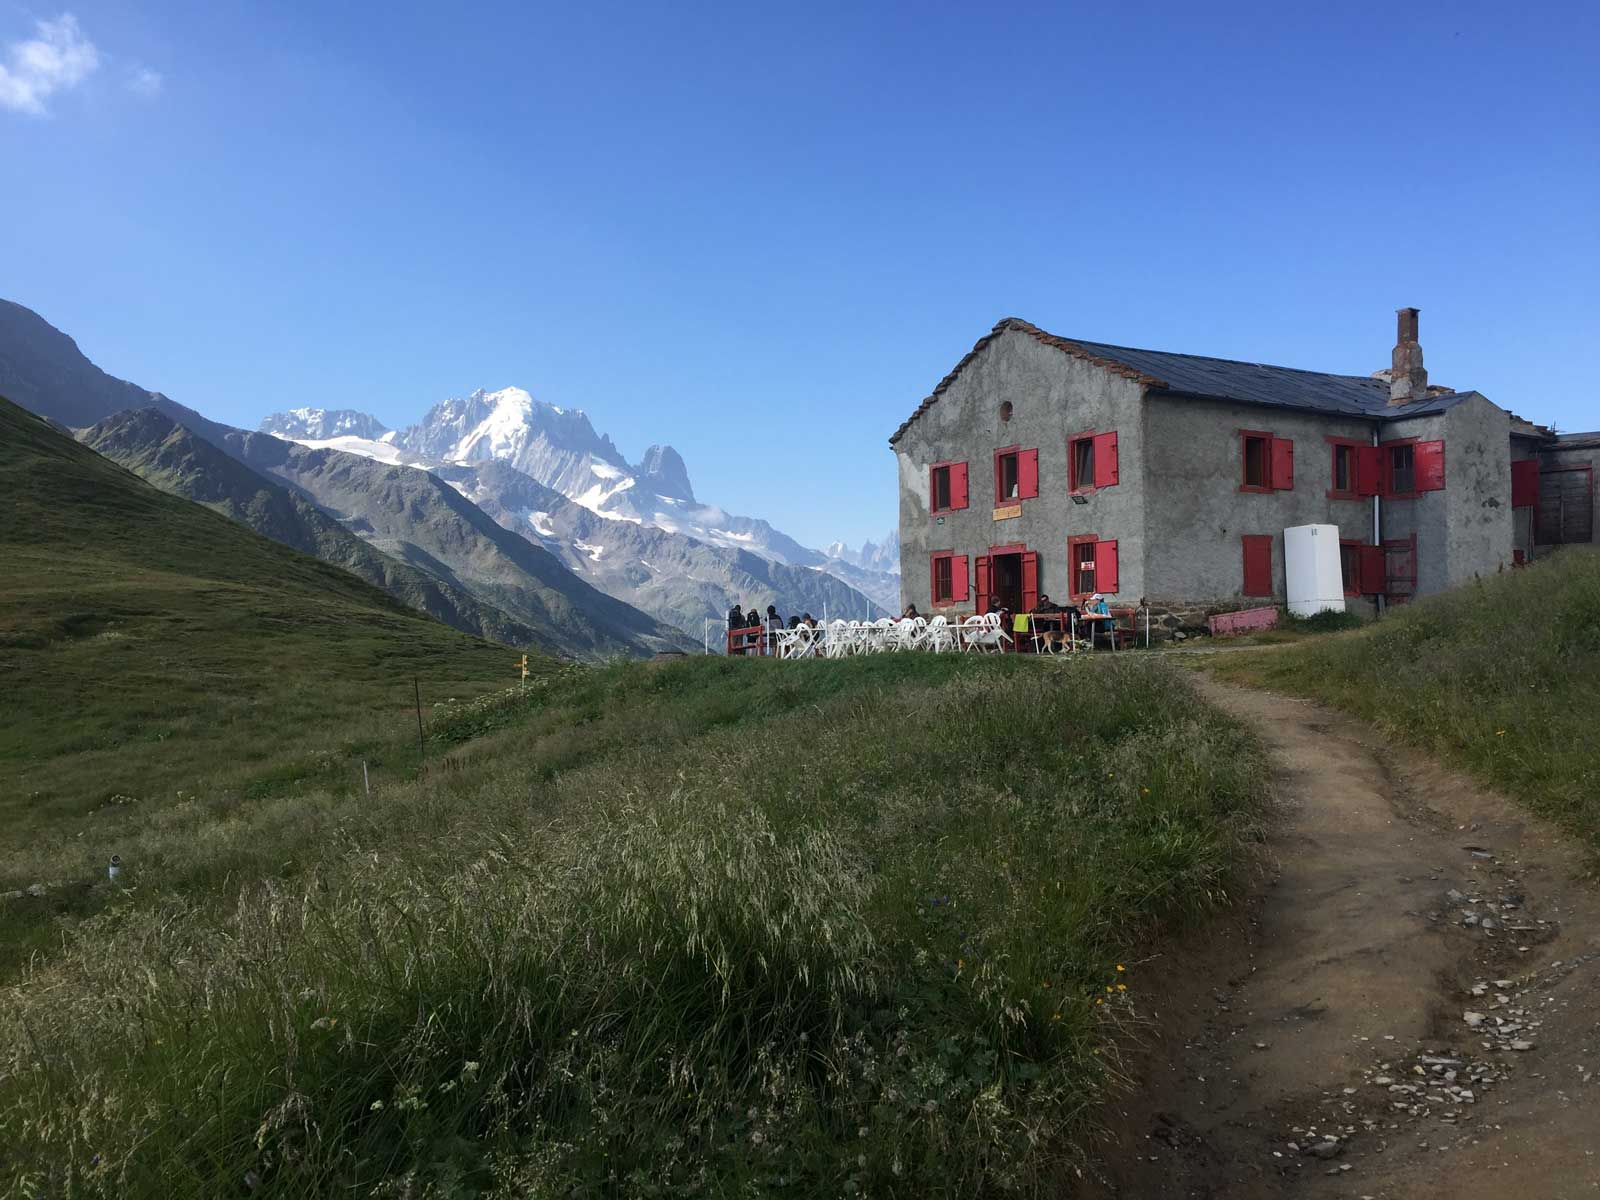 Refuge Col de Balme on self-guided Haute Route from Chamonix to Zermatt